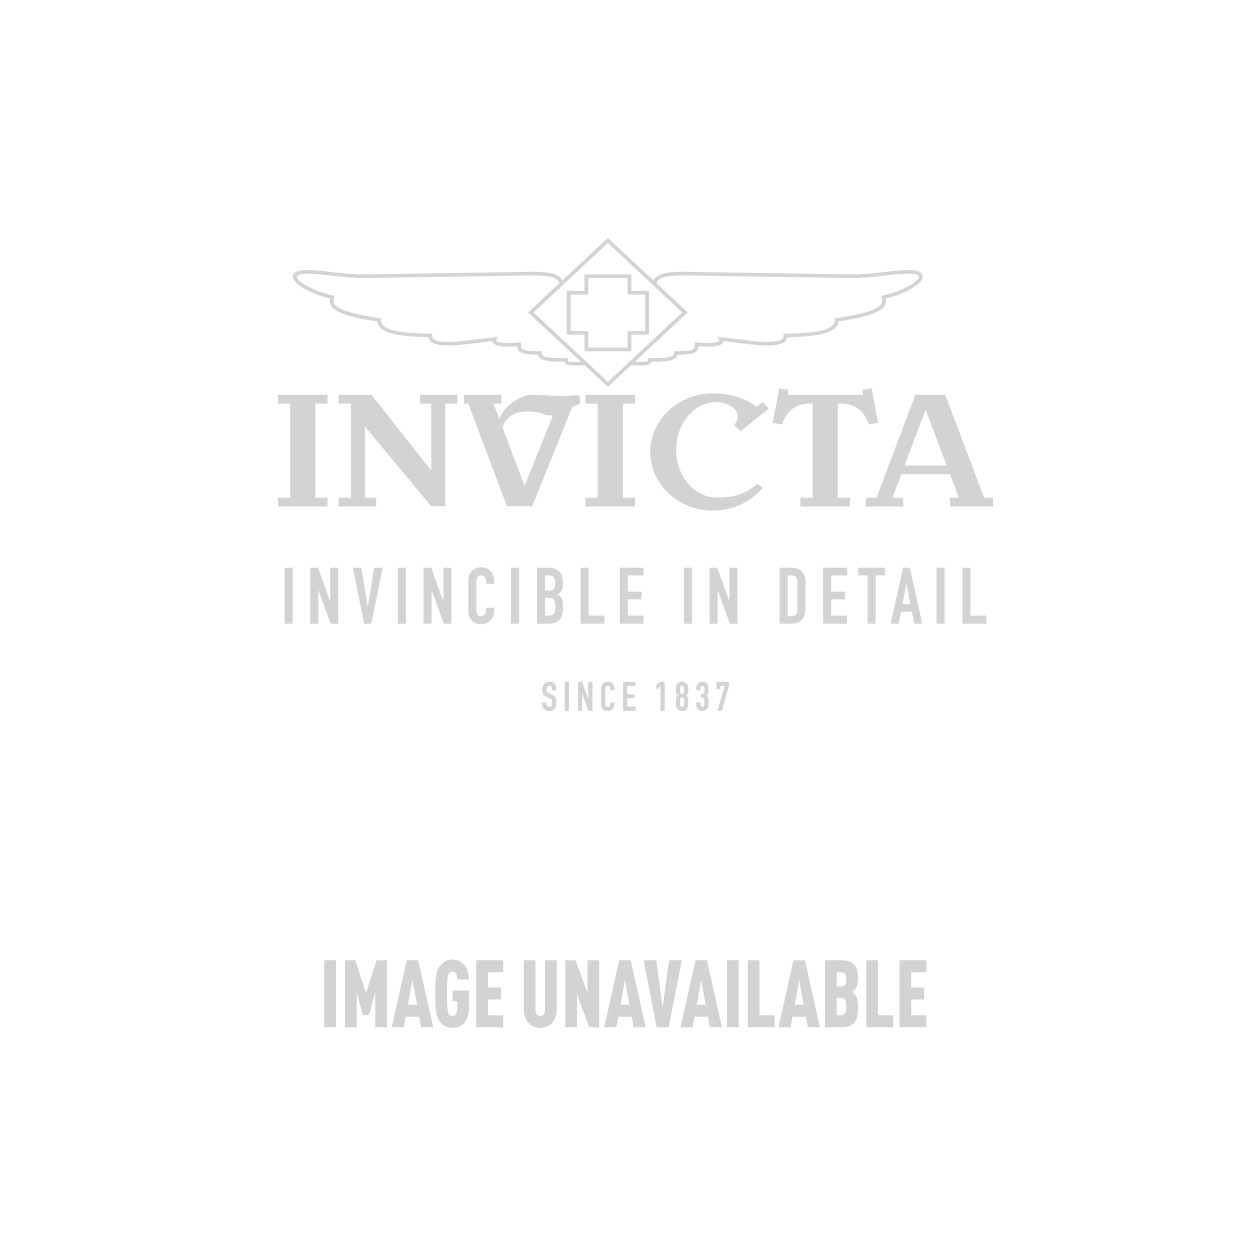 Invicta Reserve Swiss Made Quartz Watch - Stainless Steel case Stainless Steel band - Model 17280